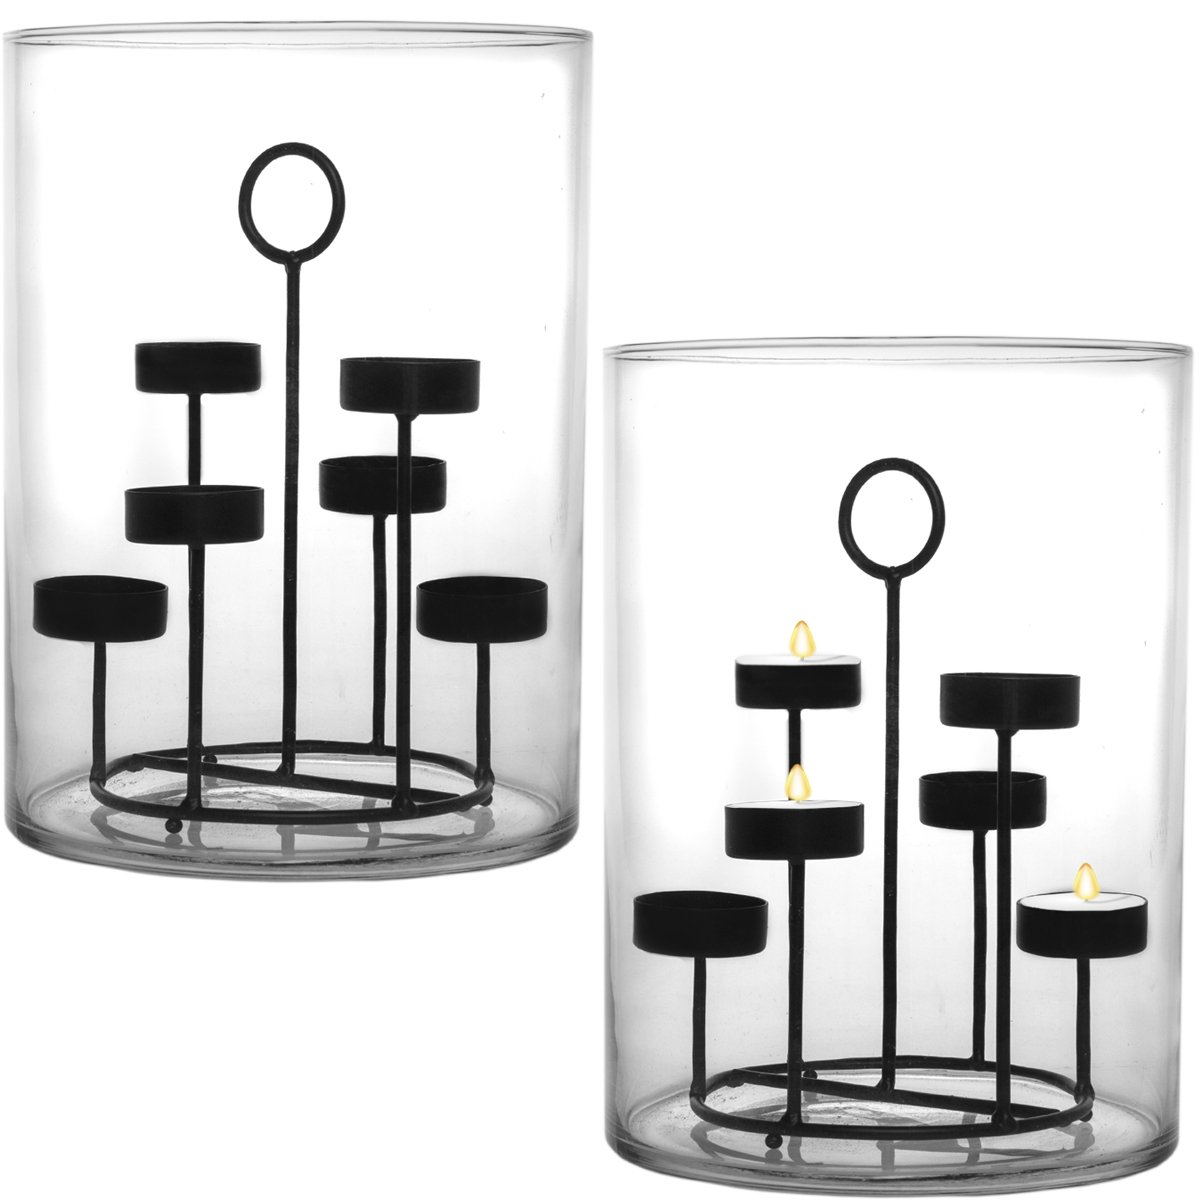 Essential Home 2 Pack Large Glass Hurricane Candle Holder Pillar Centerpieces With Metal Tea Light Set